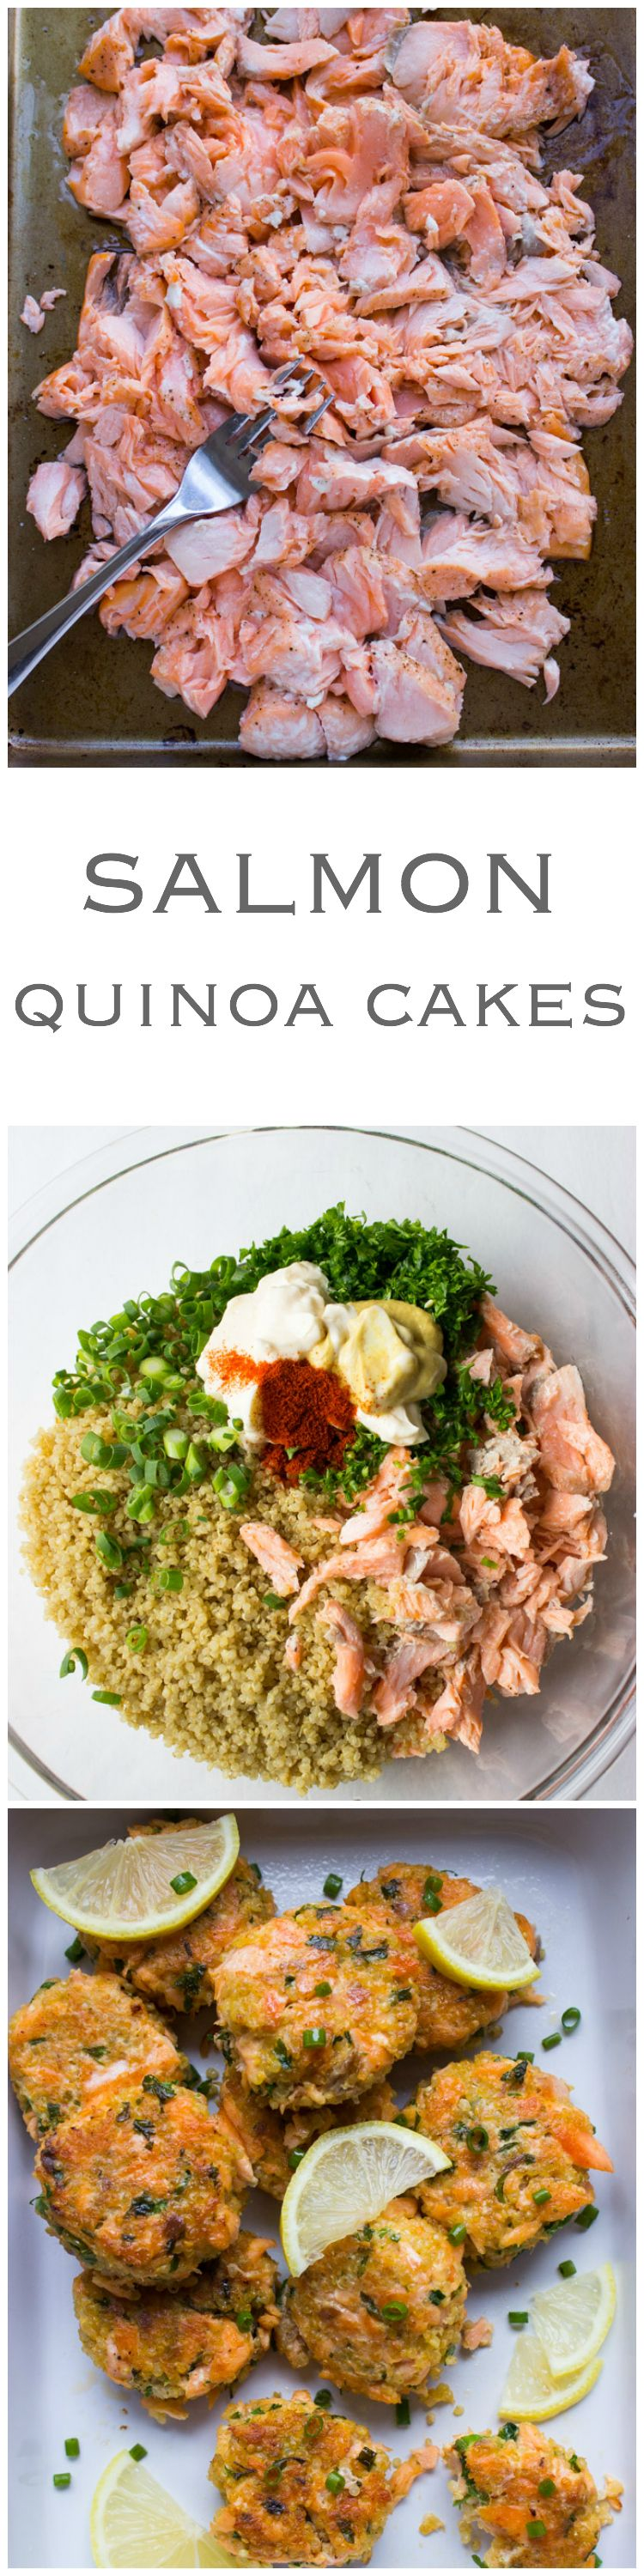 Salmon quinoa cakes recipe quinoa salmon and cake for Does fish oil make you poop